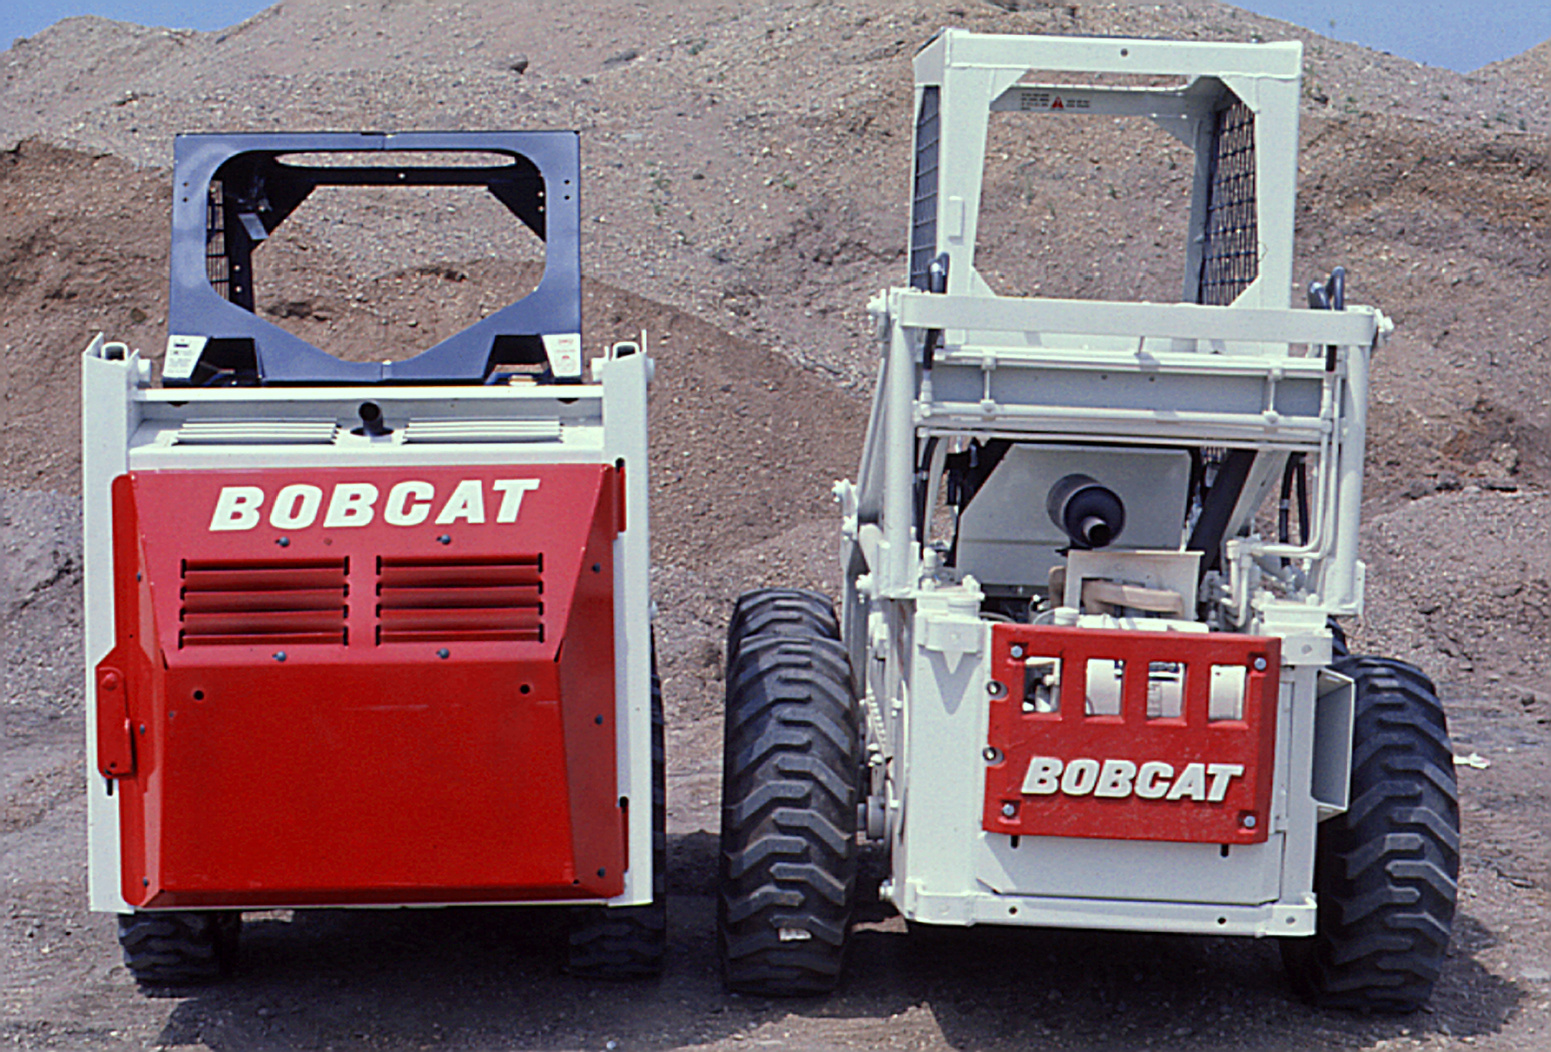 Bobcat Parts Diagram in addition Case 85xt 90xt 95xt Repair Manual Skid Steer Loader likewise Bobcat 325 328 Mini Excavator Service Repair Workshop Manual 232511001 232411001 also Case 1845c Key Switch Wiring Diagram moreover Hesston Parts Service. on skid steer parts diagram in bobcat on